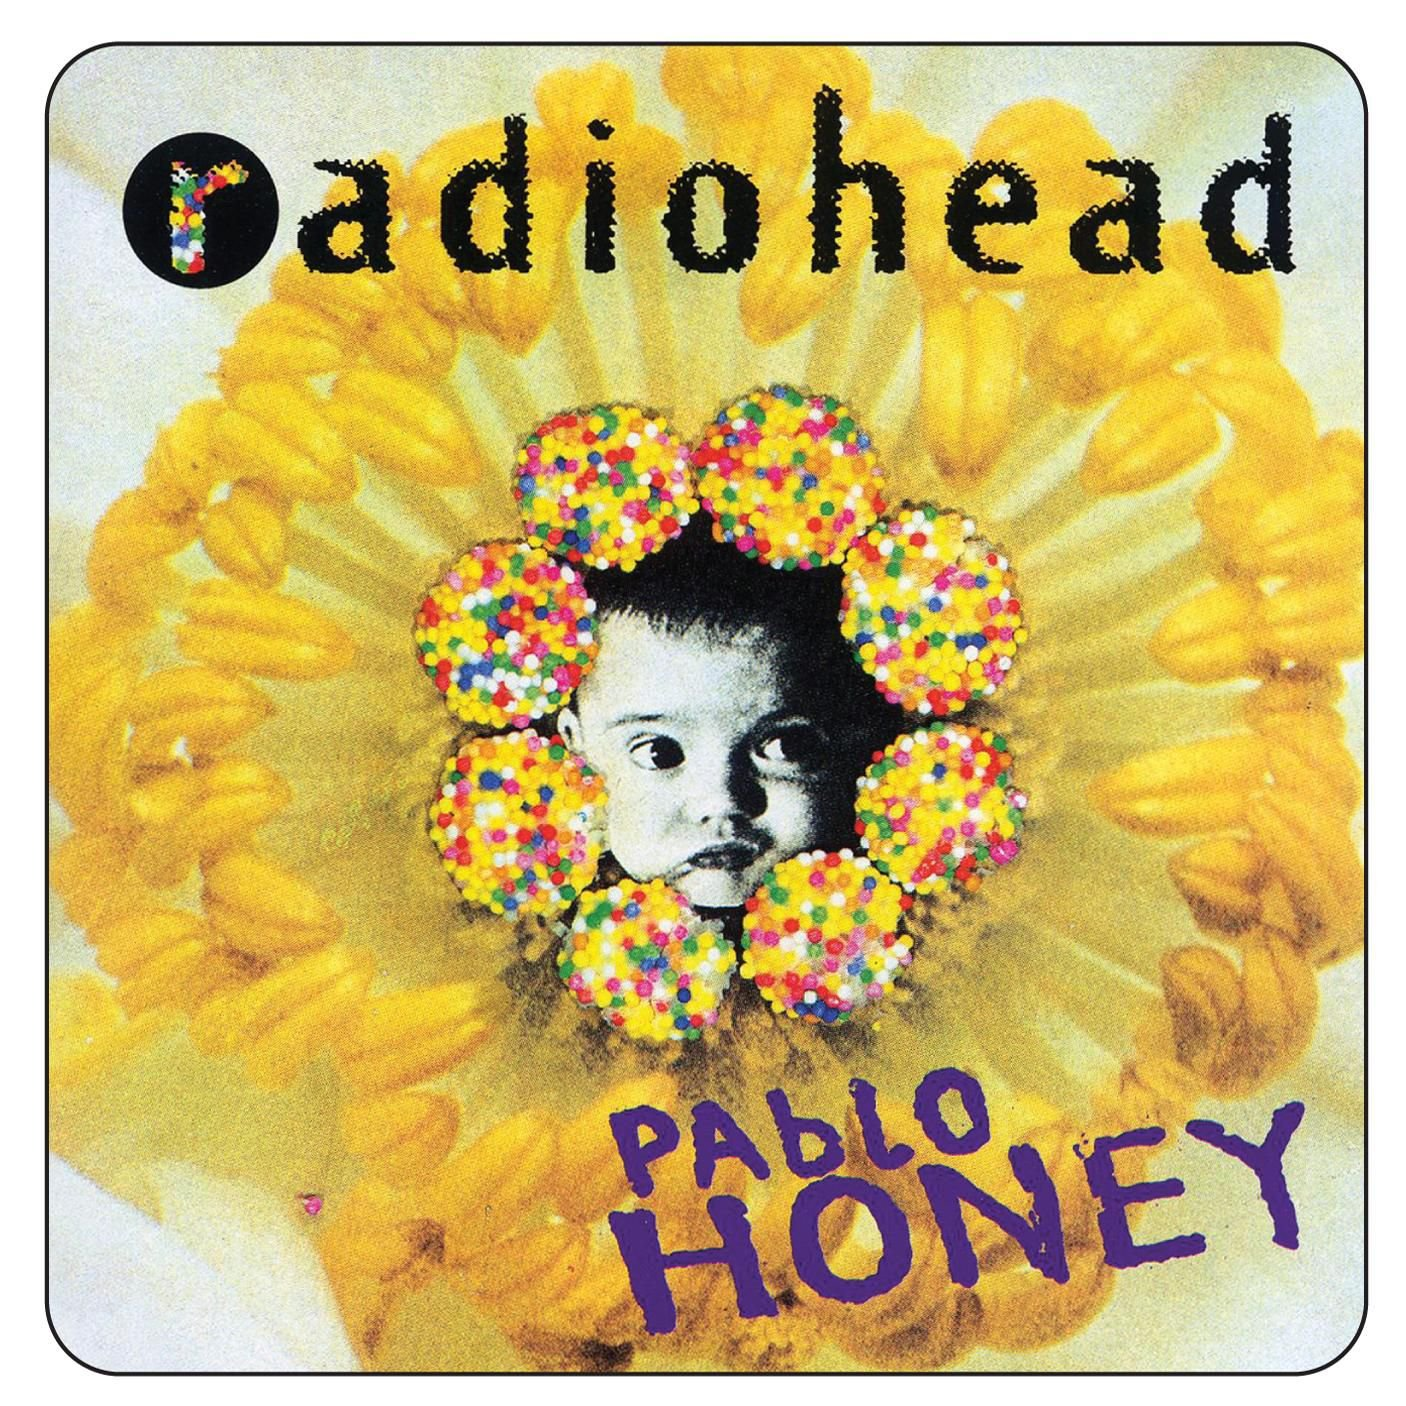 Pablo Honey (Ogv) [12 inch Analog]